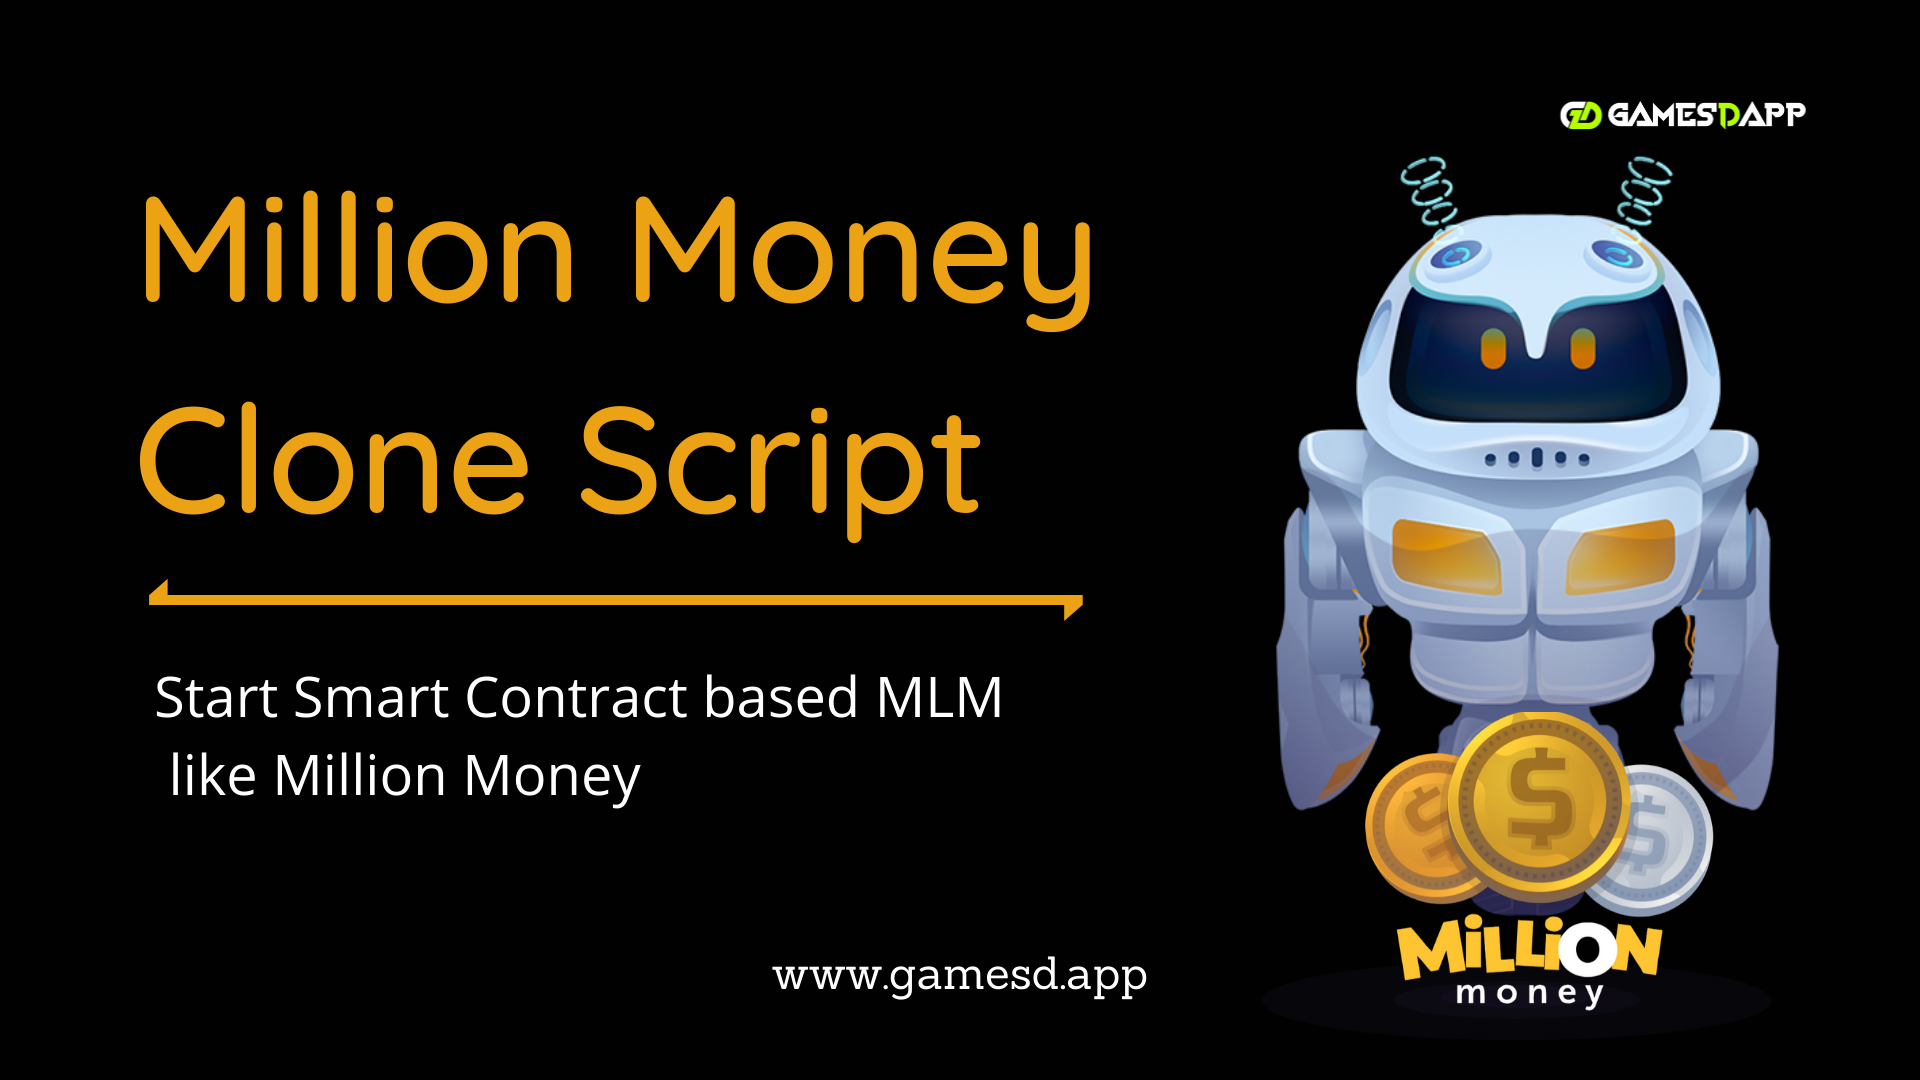 Million Money Clone Script - To Start Smart Contract Based MLM Like Million Money